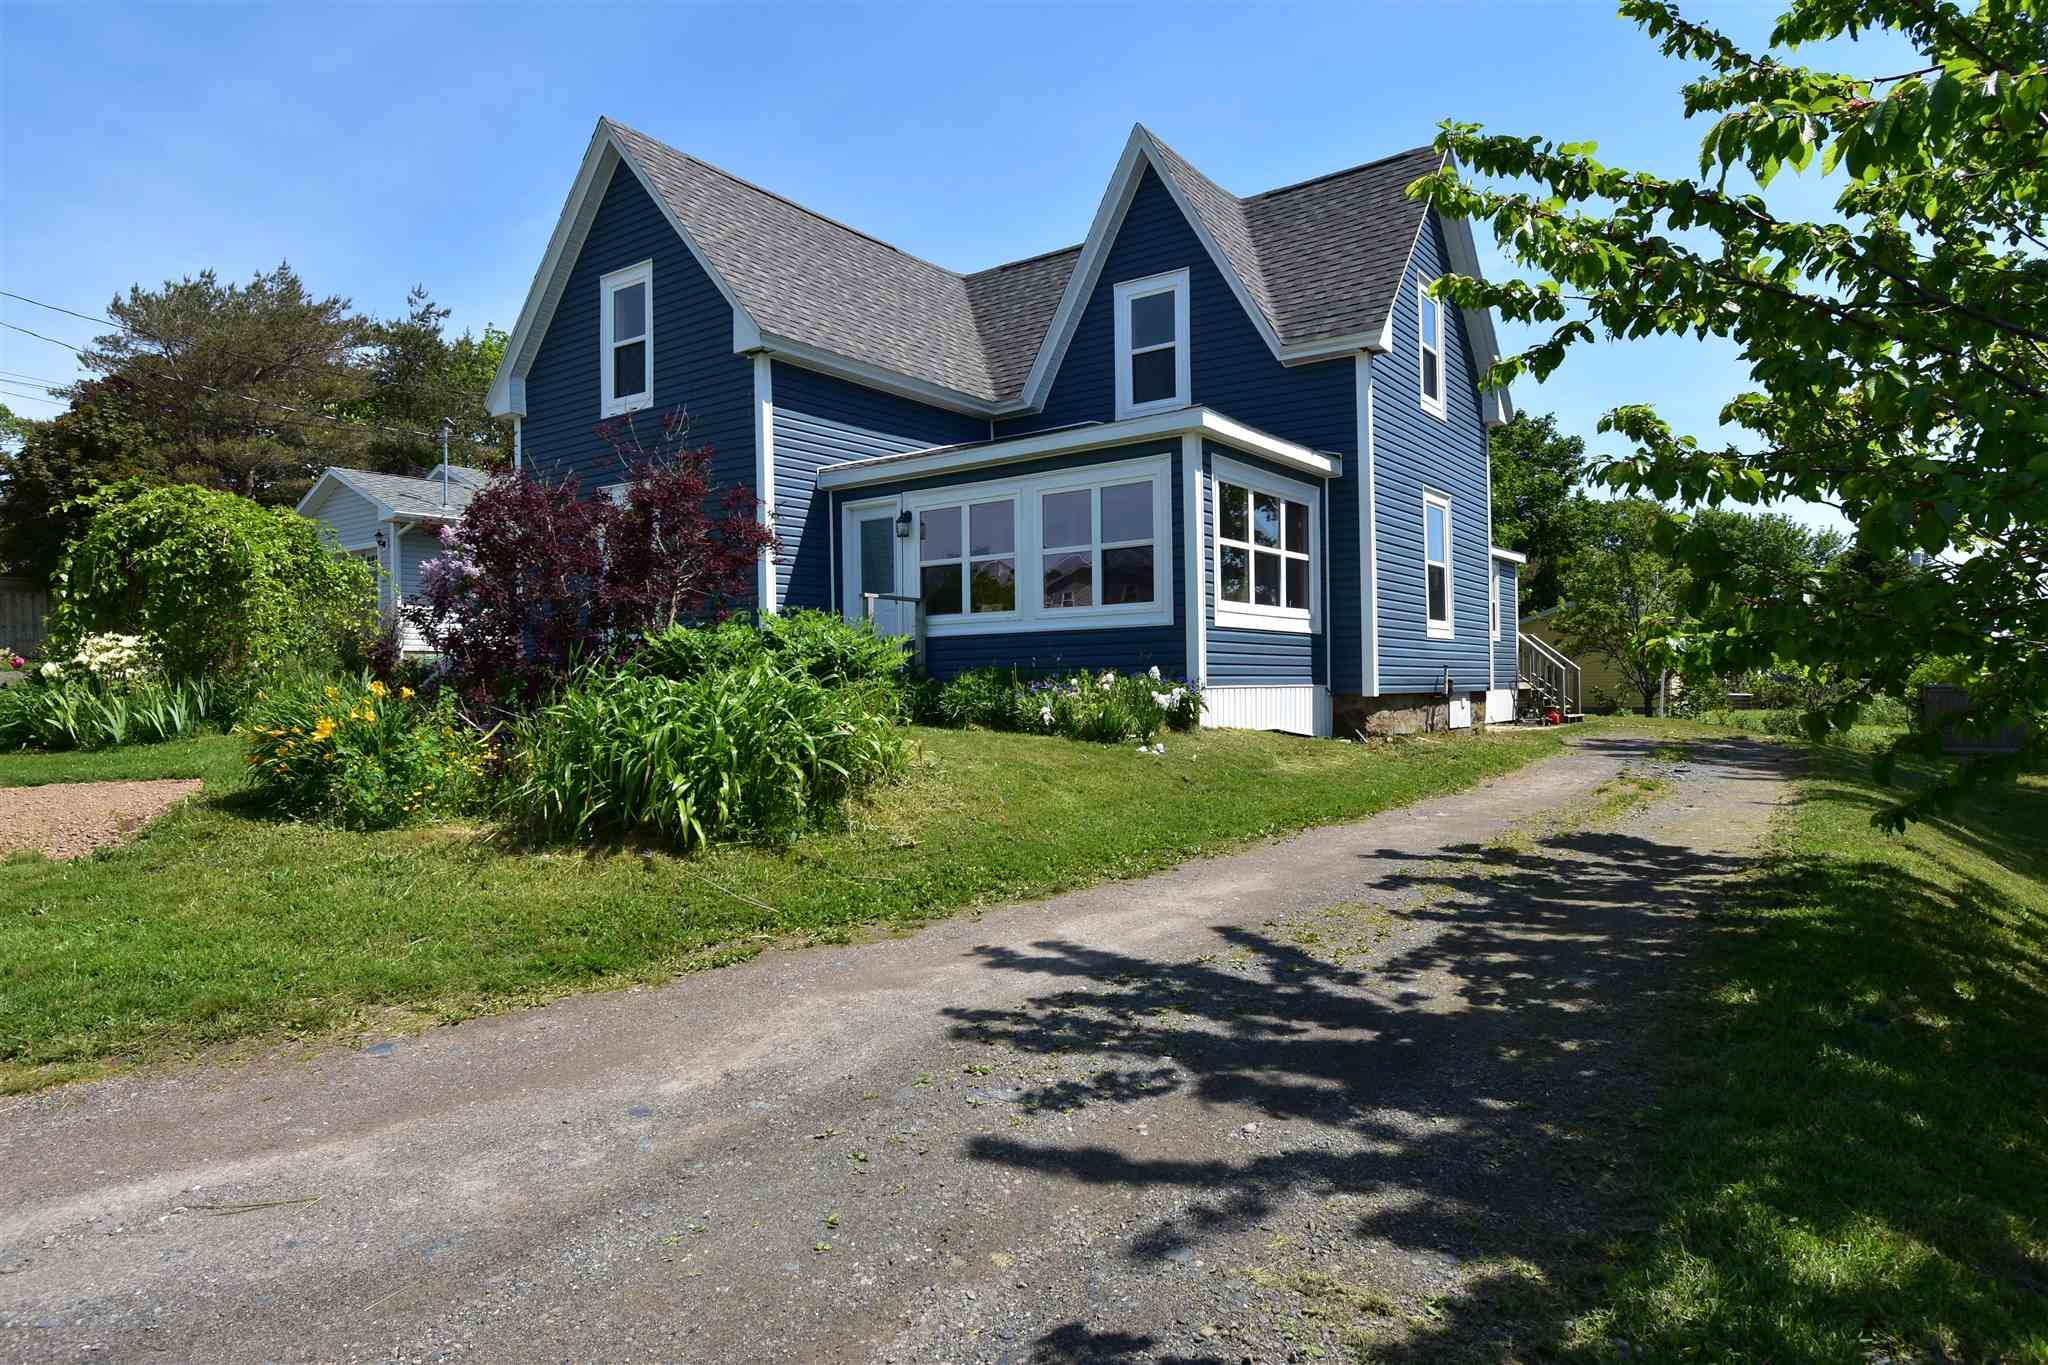 Main Photo: 66 KING Street in Digby: 401-Digby County Residential for sale (Annapolis Valley)  : MLS®# 202114121